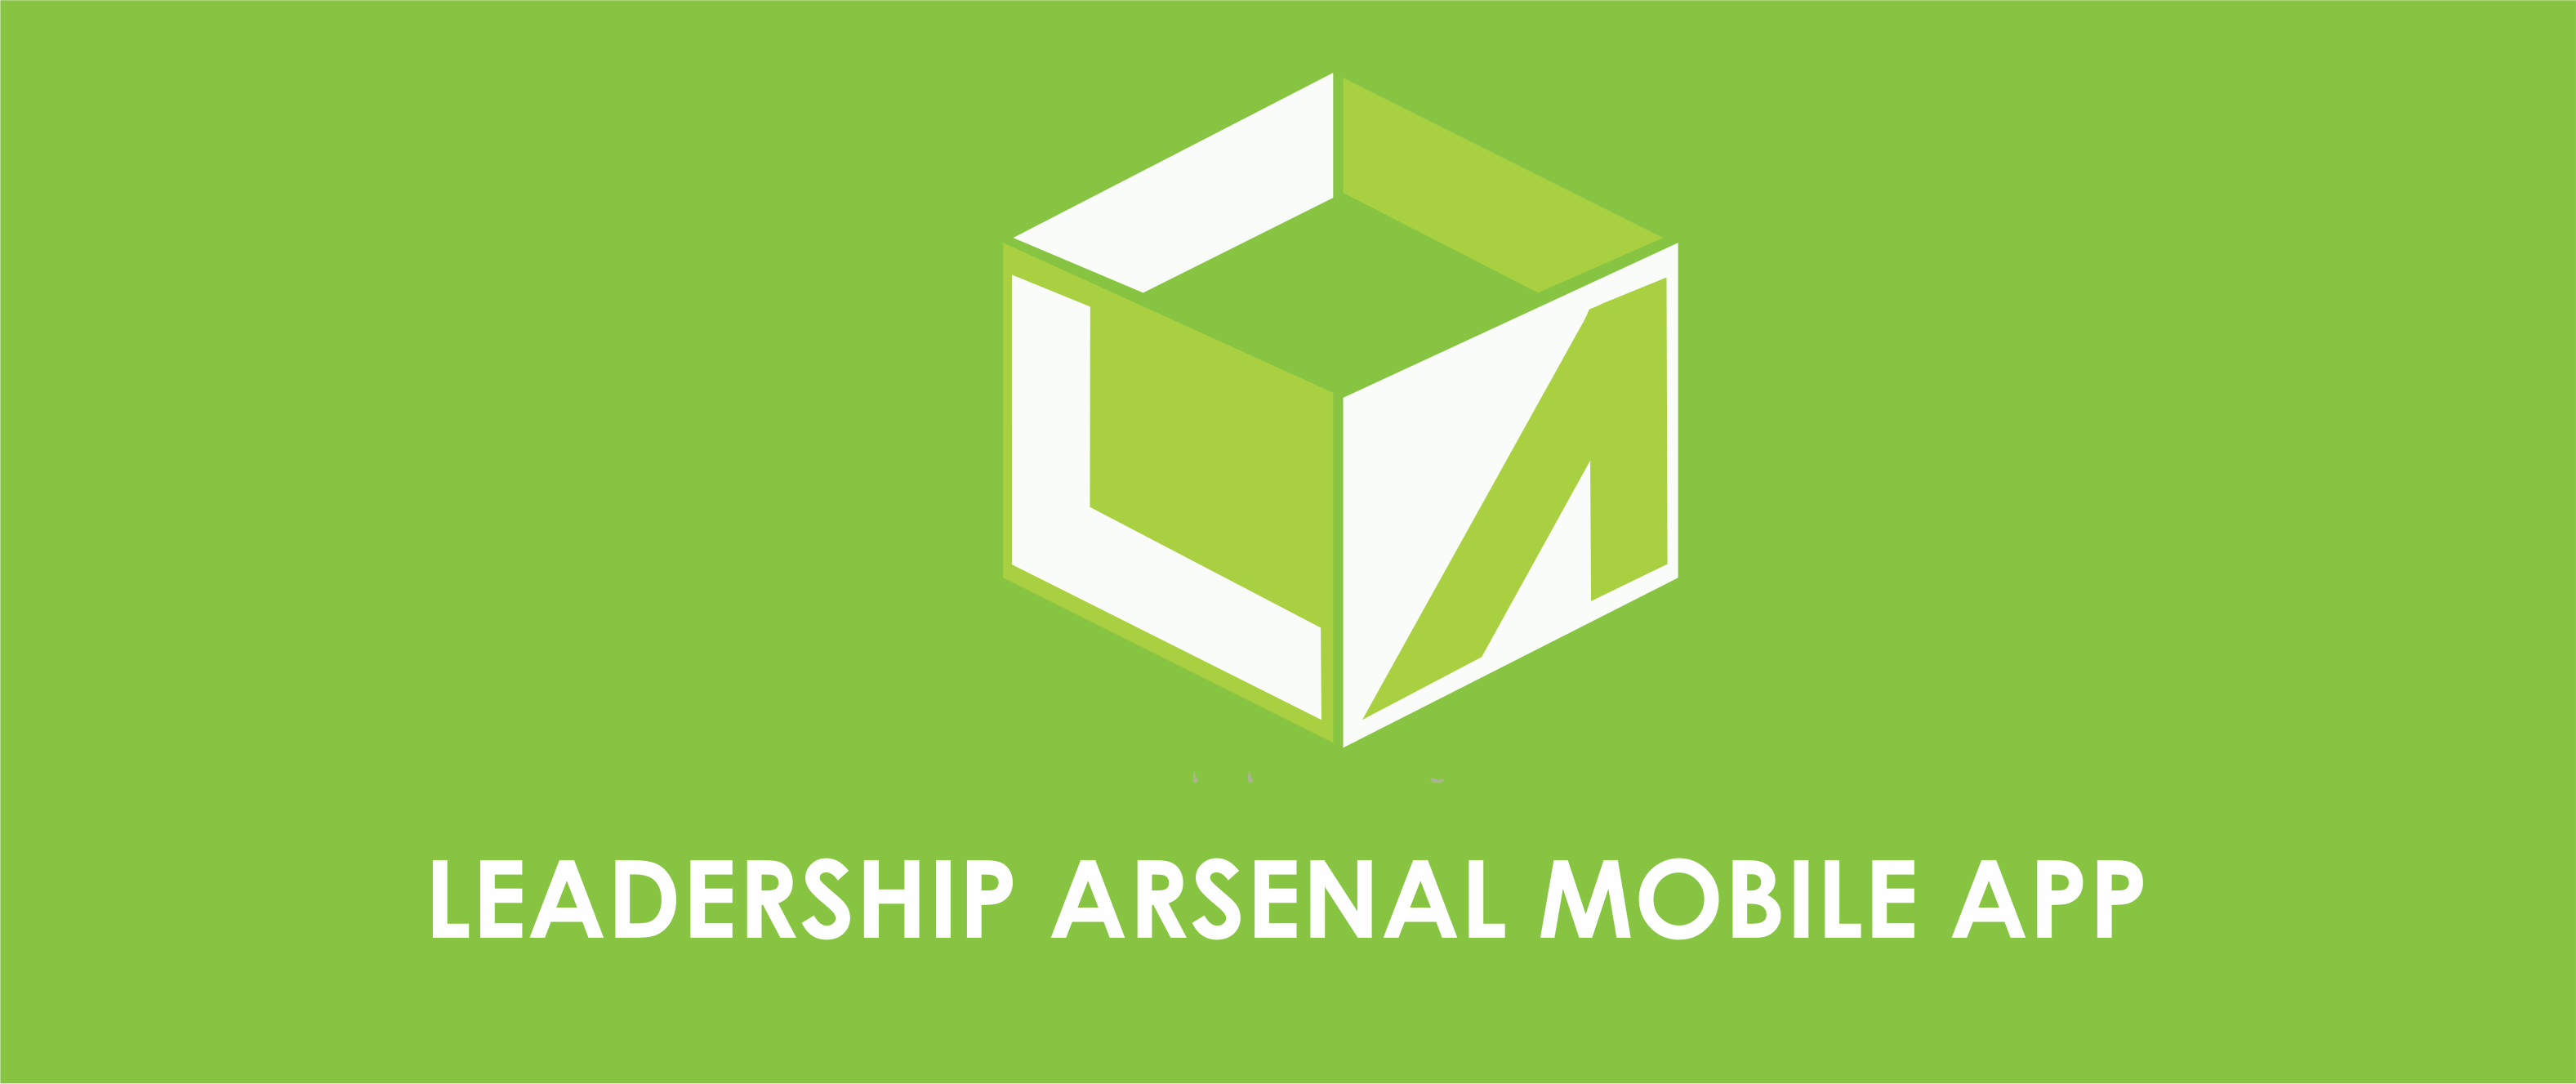 leadership-arsenal-mobile-app